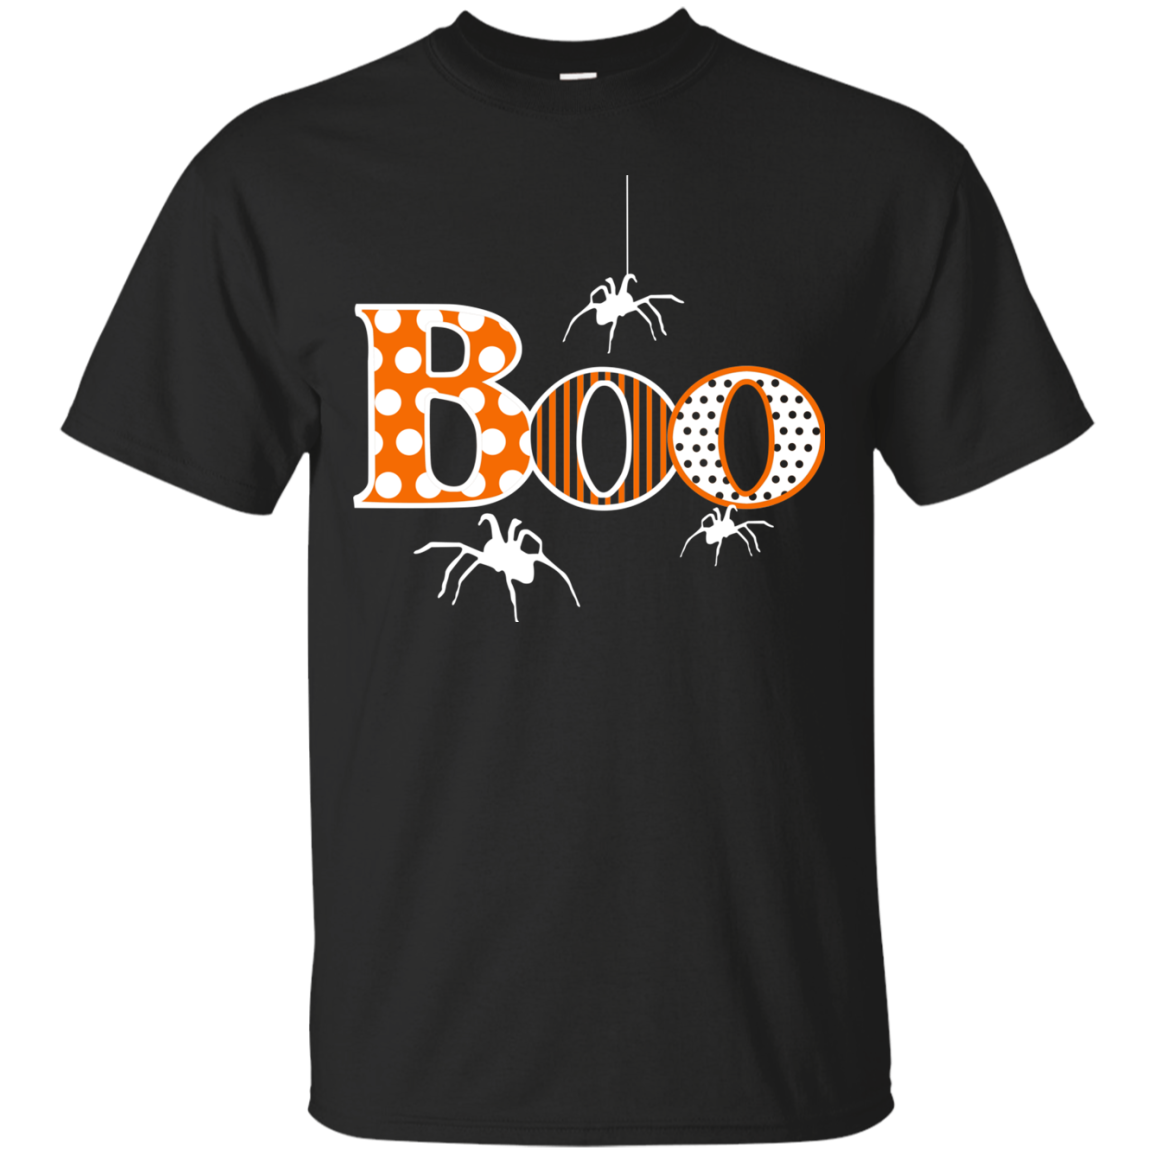 Boo With Spiders Halloween Men T Shirt For Father  Brother  Boyfriends  Grandpa  Friends On Halloween 2017  Best Halloween Gift Ideas For Your Beloved